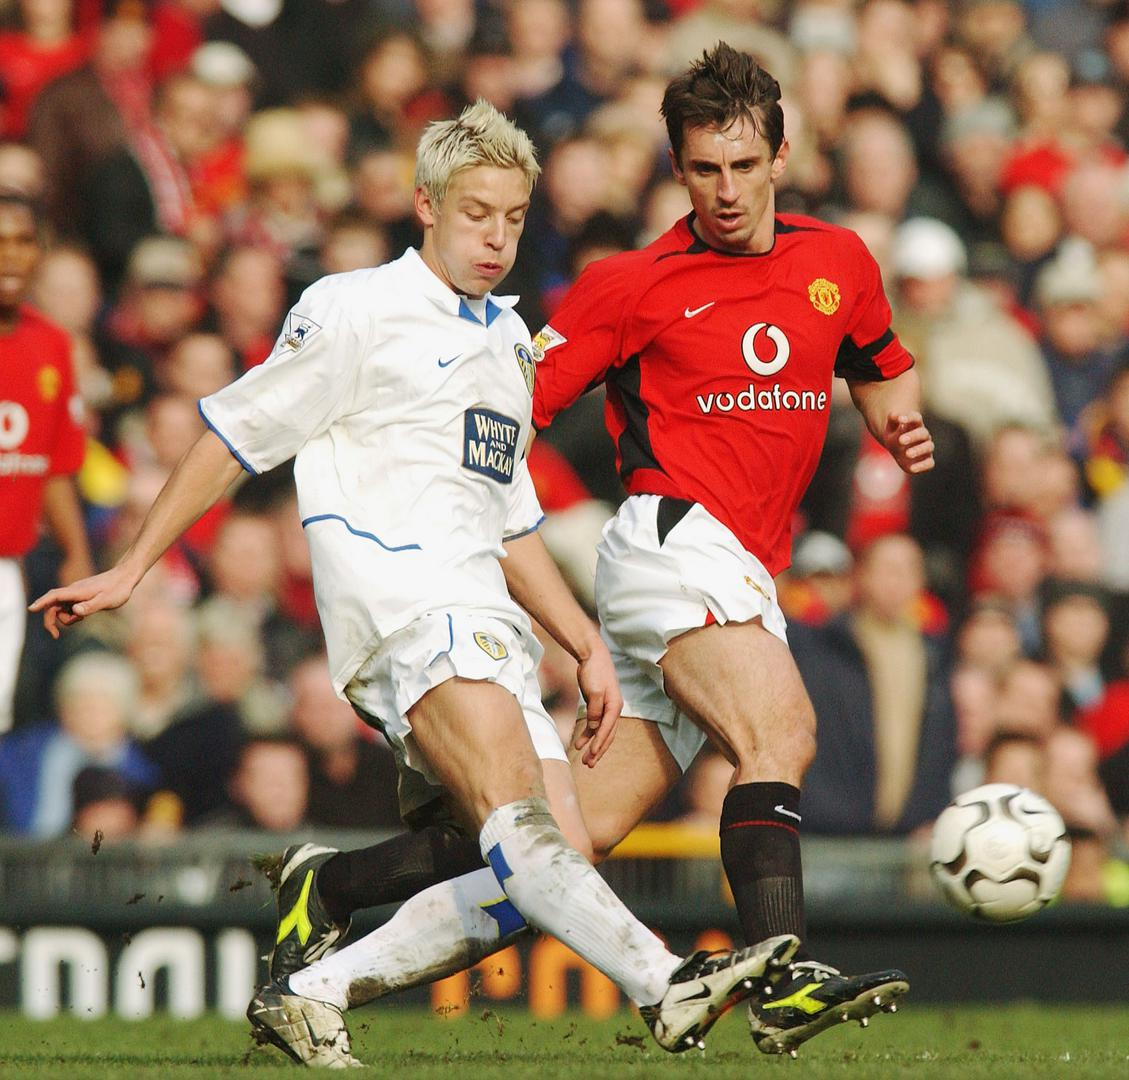 Alan Smith in action for Leeds against Manchester United defender Gary Neville